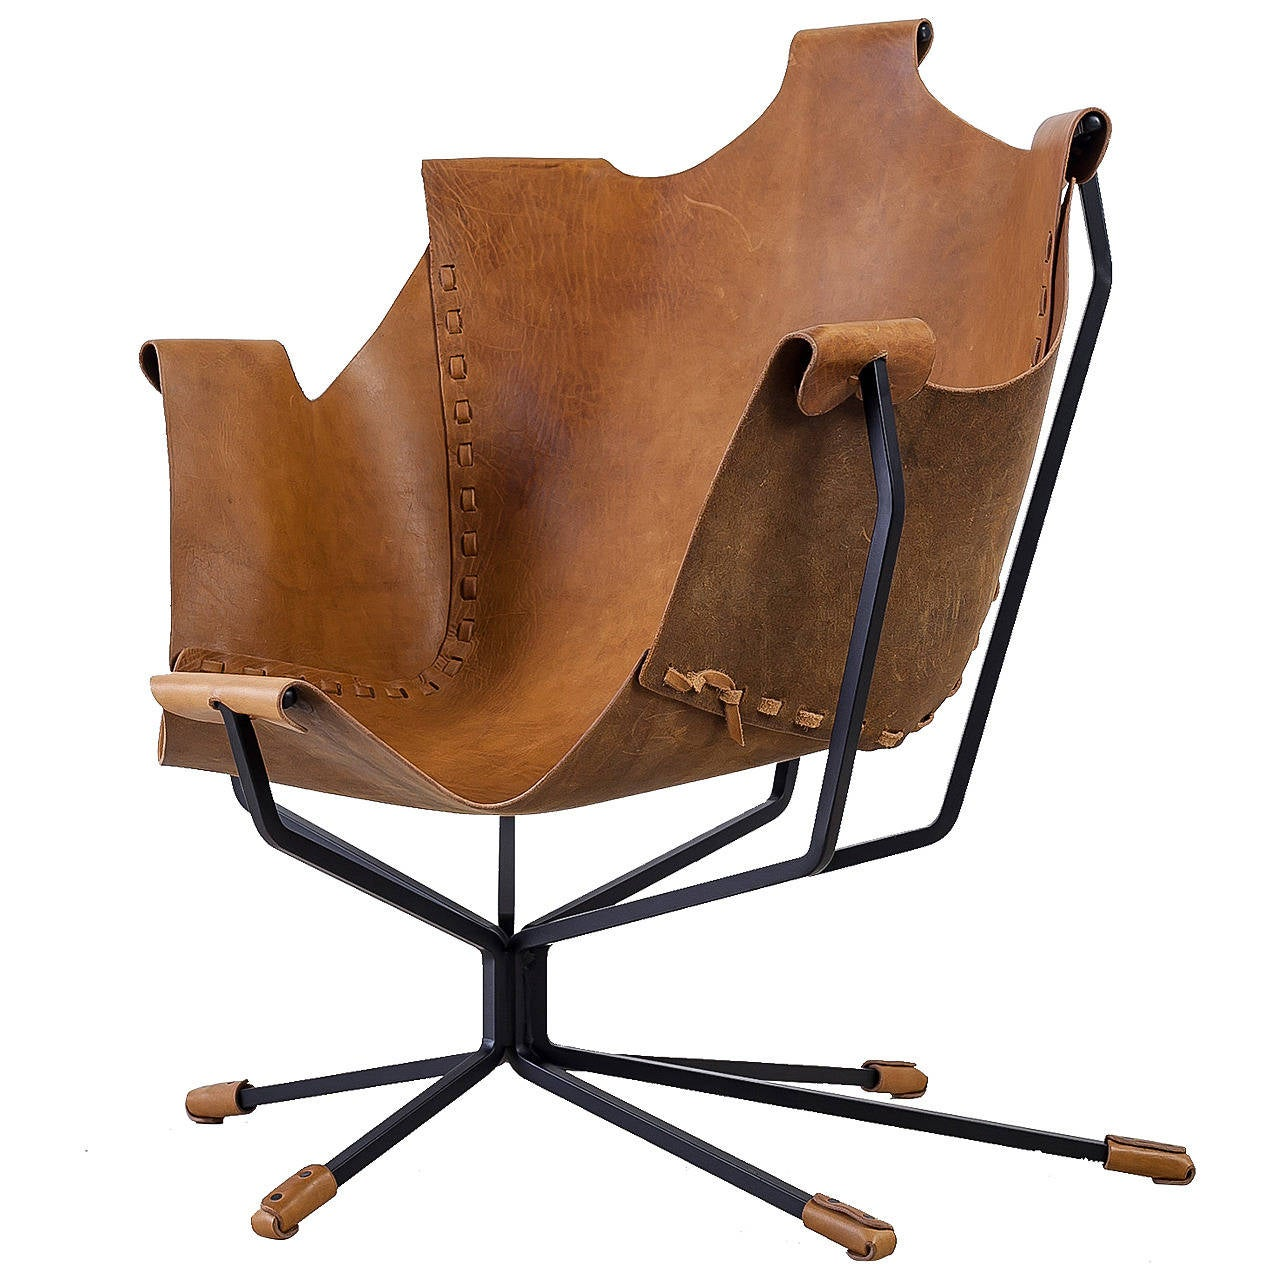 Special Edition Dan Wenger Sling Chair, USA, 1970s 1